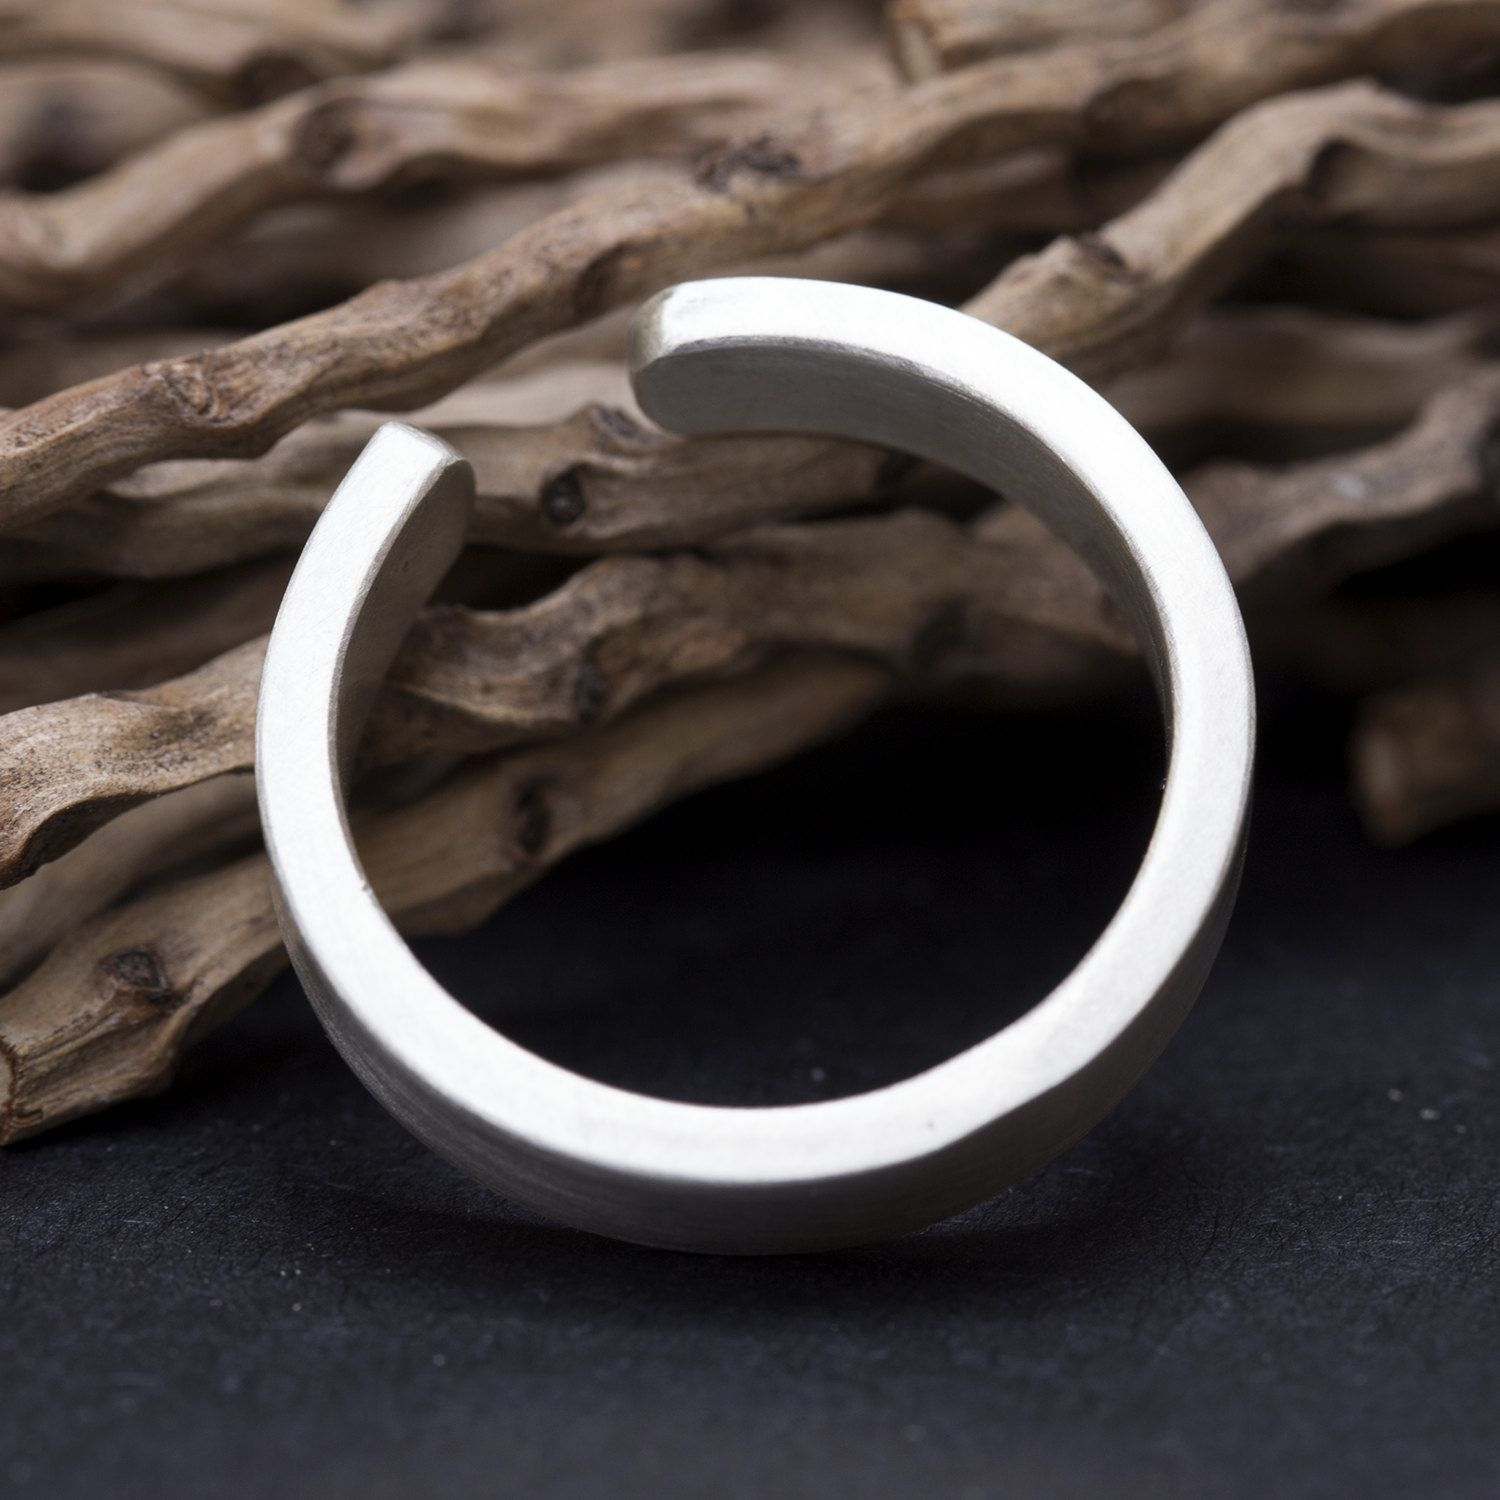 A Thick Sterling Silver Open Ring For Men Or Women Handmade By